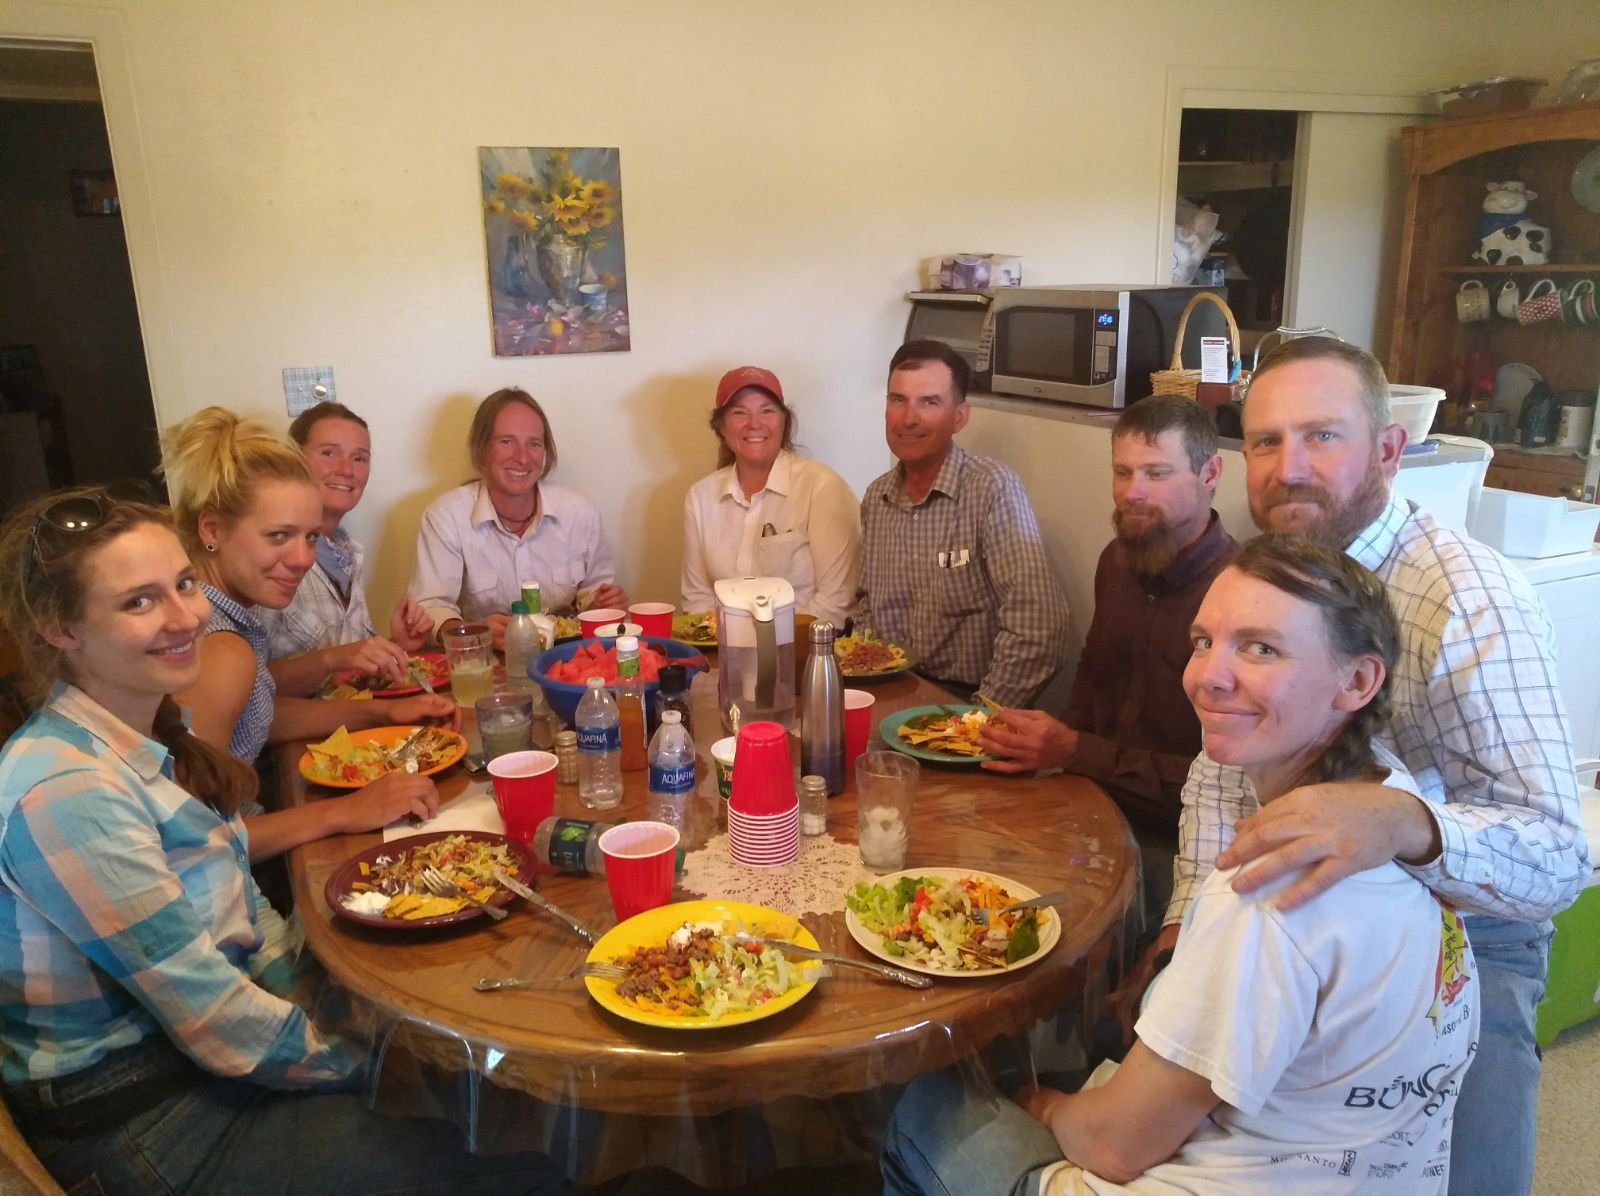 Thanks Katrin for this great picture! Lunch with a bunch of great people! From left to right: Pia, Christina, I, Andy, Dianne, Ethan, Rob, Seth and Rebecca.  Danke Katrin für dieses tolle Foto! Mittagessen mit einem Haufen toller Leute! Von links nach rechts:Pia, Christina, ich, Andy, Dianne, Ethan, Rob, Seth und Rebecca.